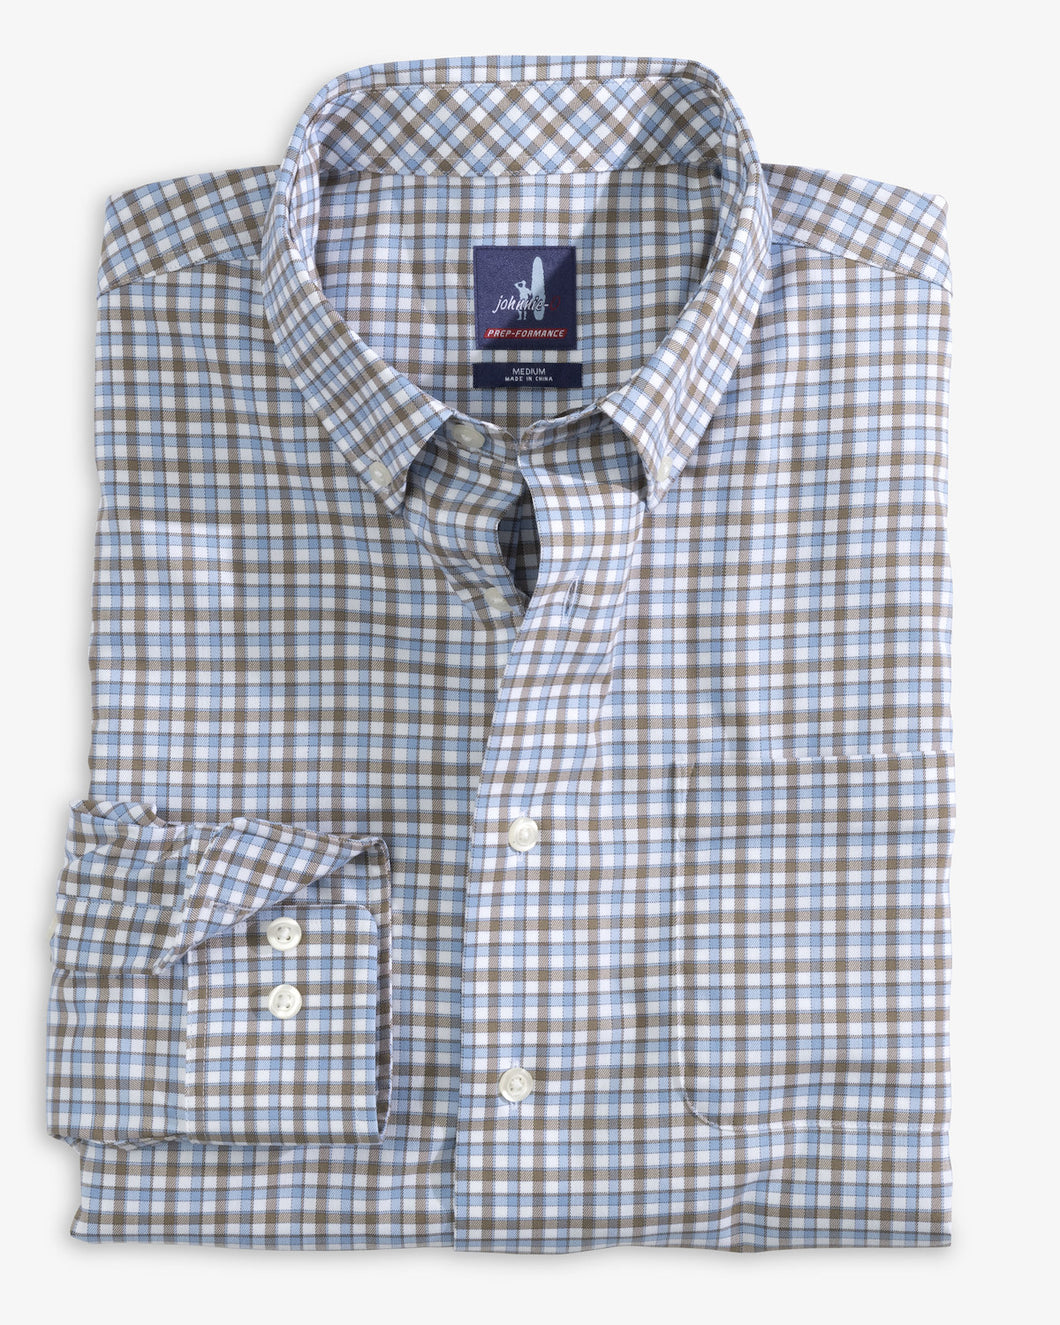 M Redmond Shirt